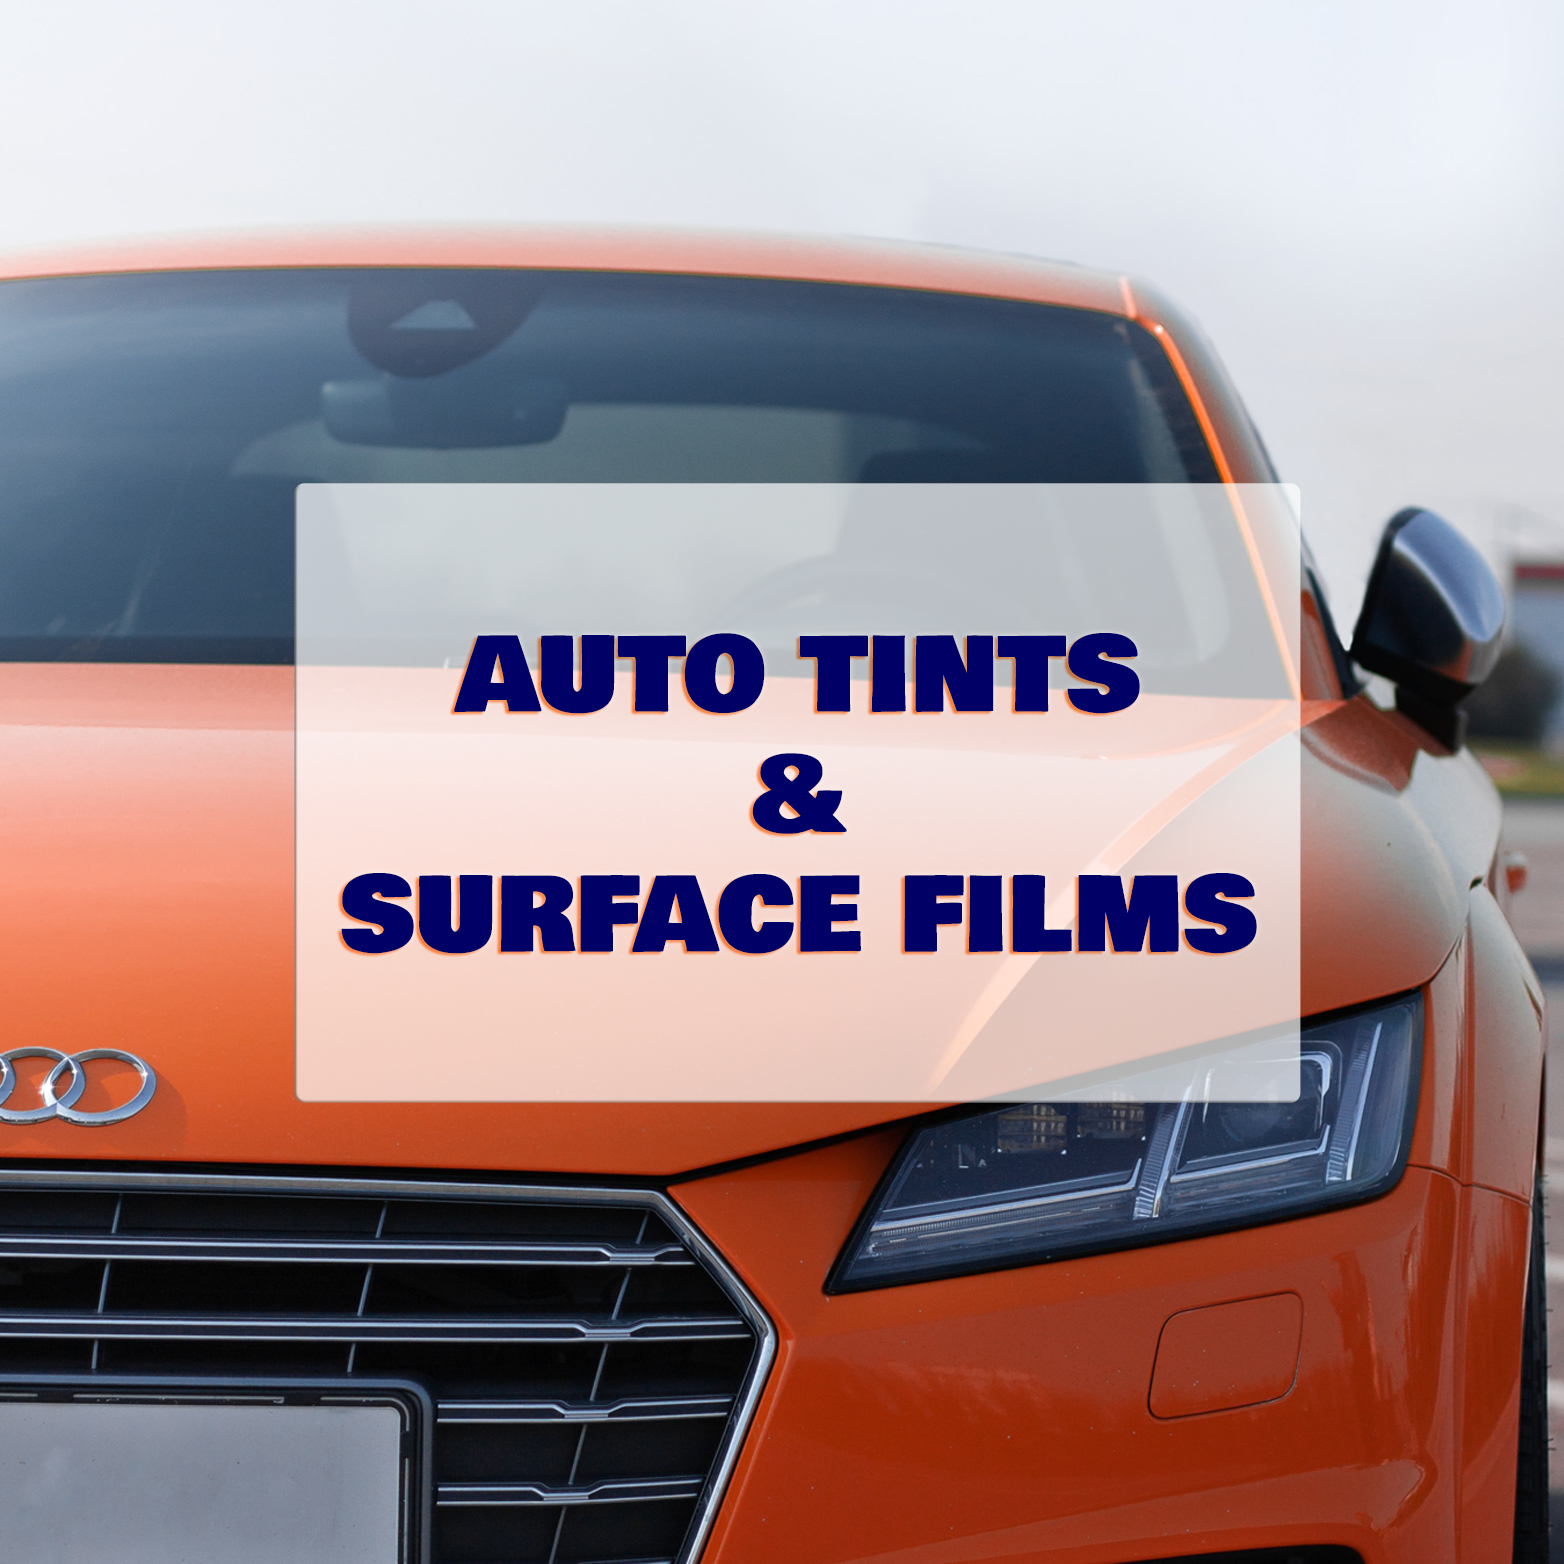 automotive window tint category header with photo of orange car with tinted windows